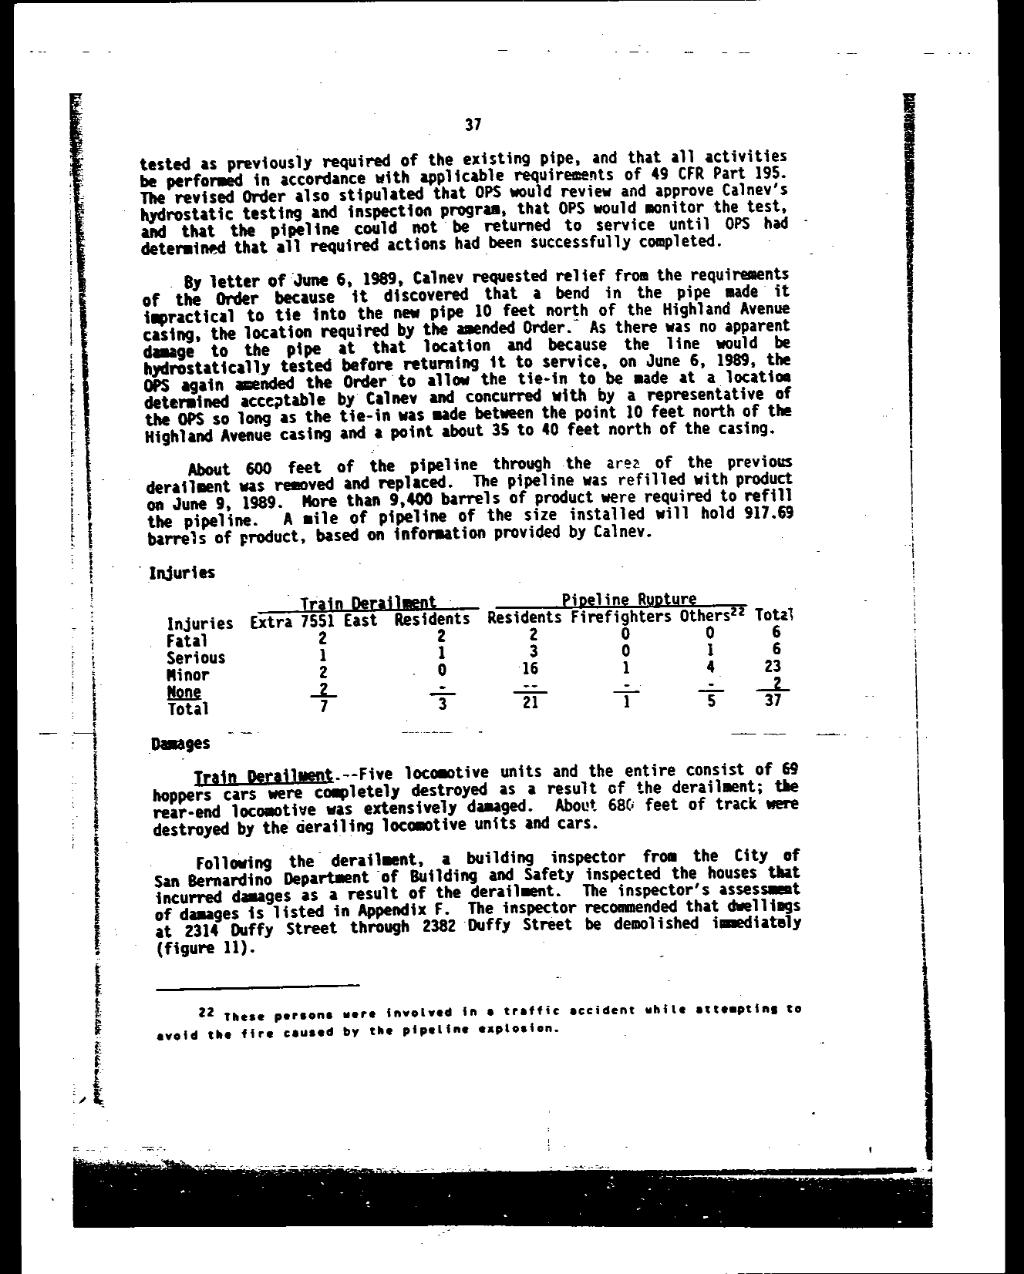 Page:NTSB - Railroad Accident Report - Derailment on May 25